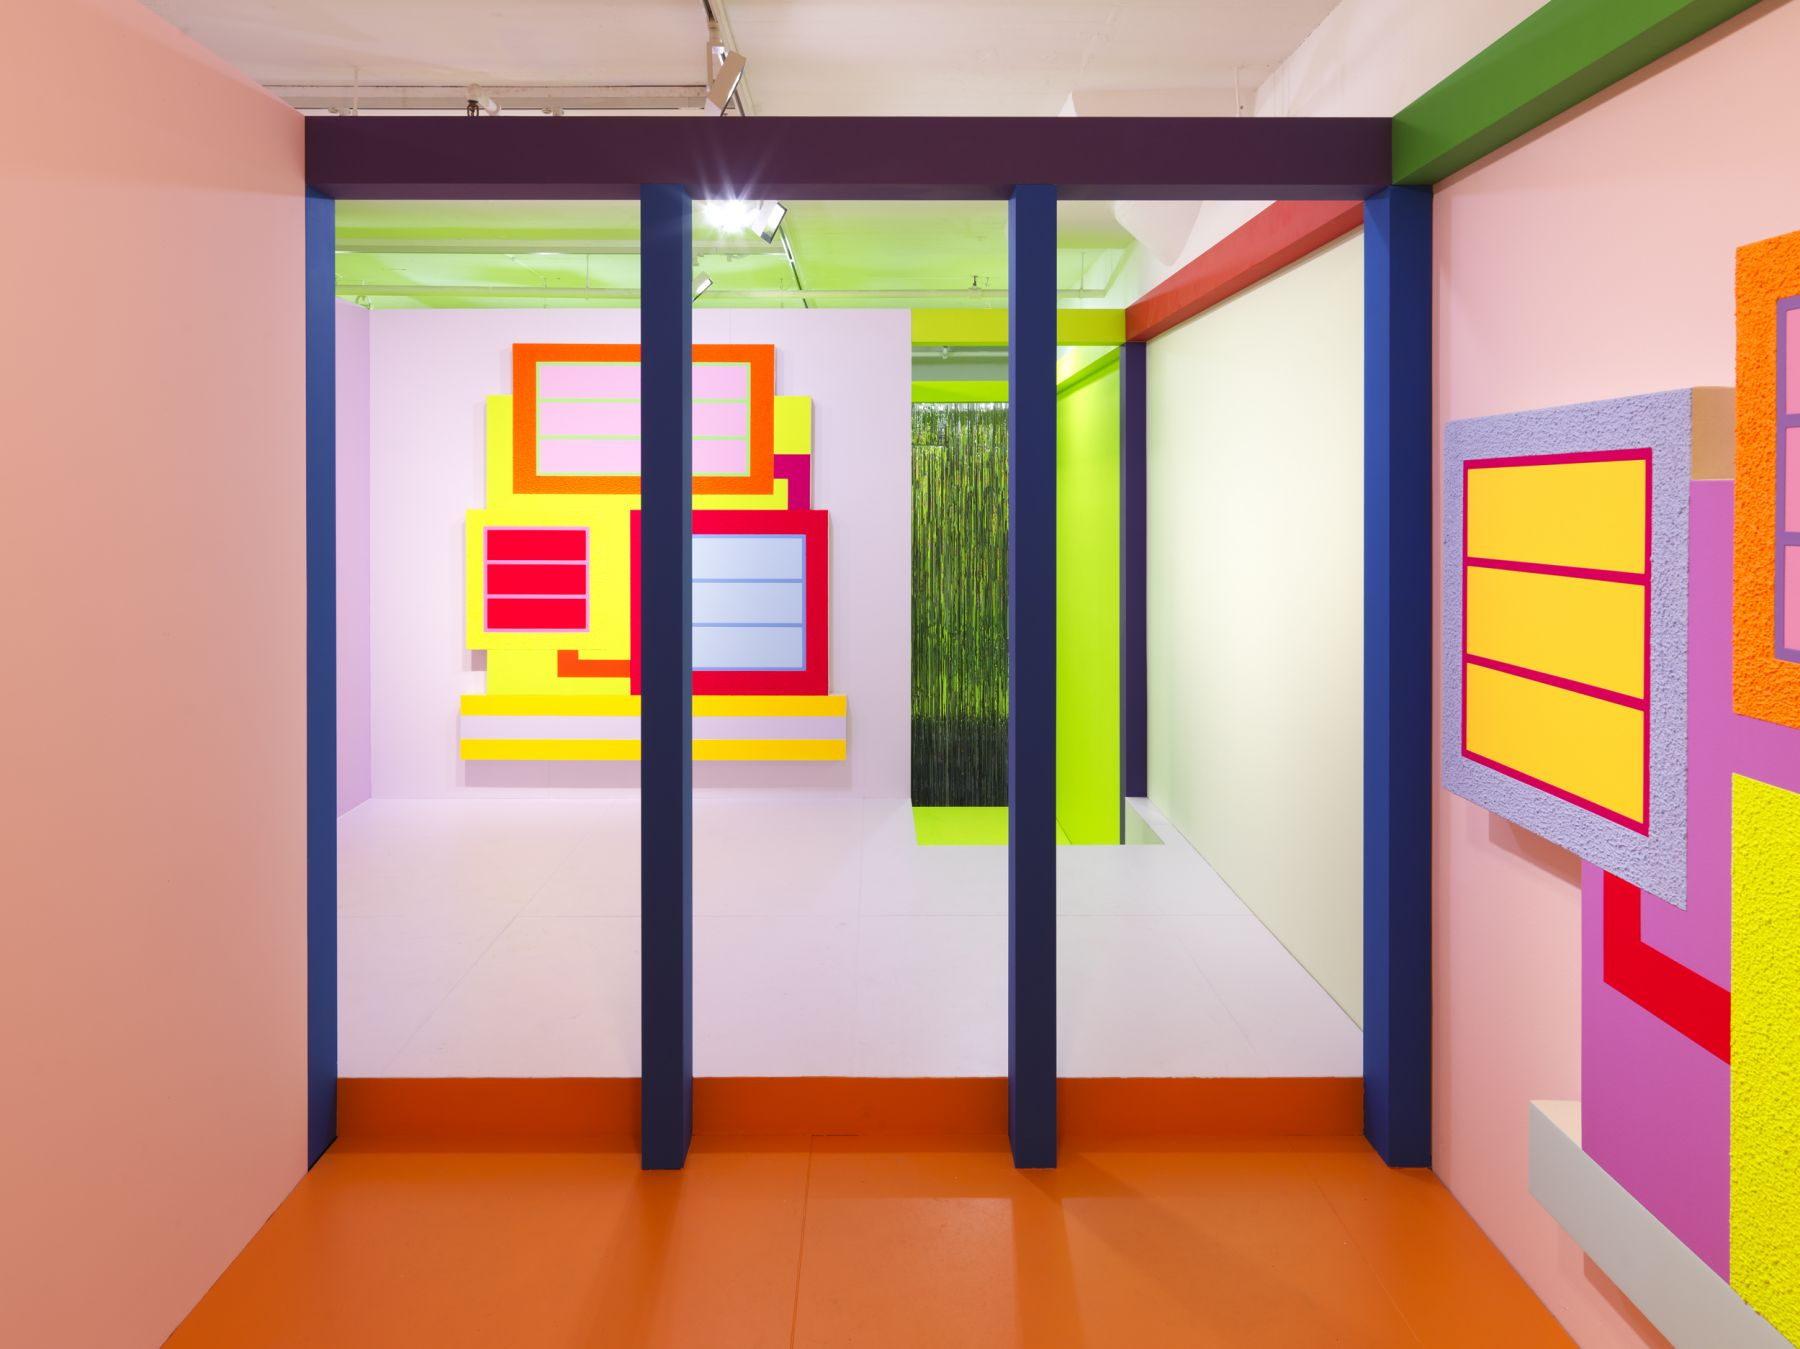 Peter Halley, Installation view, Heterotopia II, Greene Naftali, New York, 2019